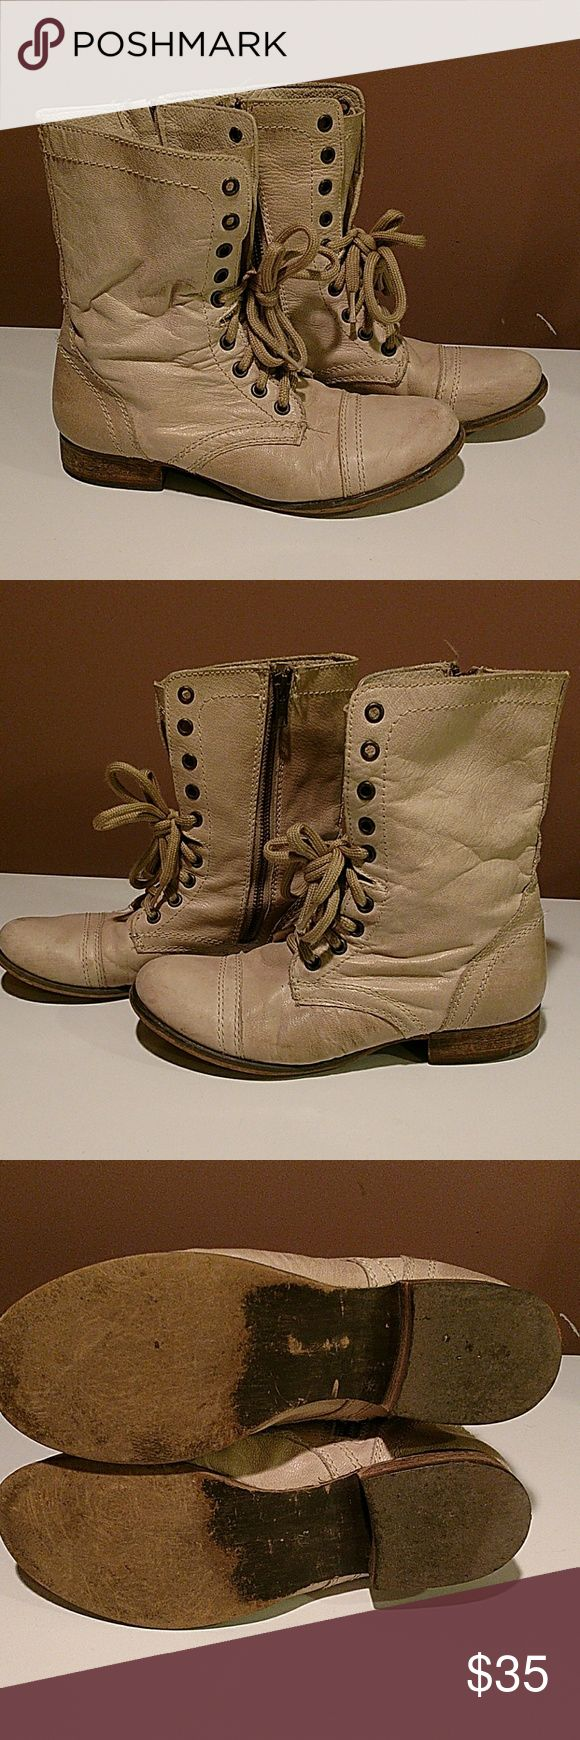 Steve Madden troopa cream Ivory coast boots 7.5 Steve Madden troopa cream Ivory coast boots 7.5, in very good preowned condition Steve Madden Shoes Combat & Moto Boots